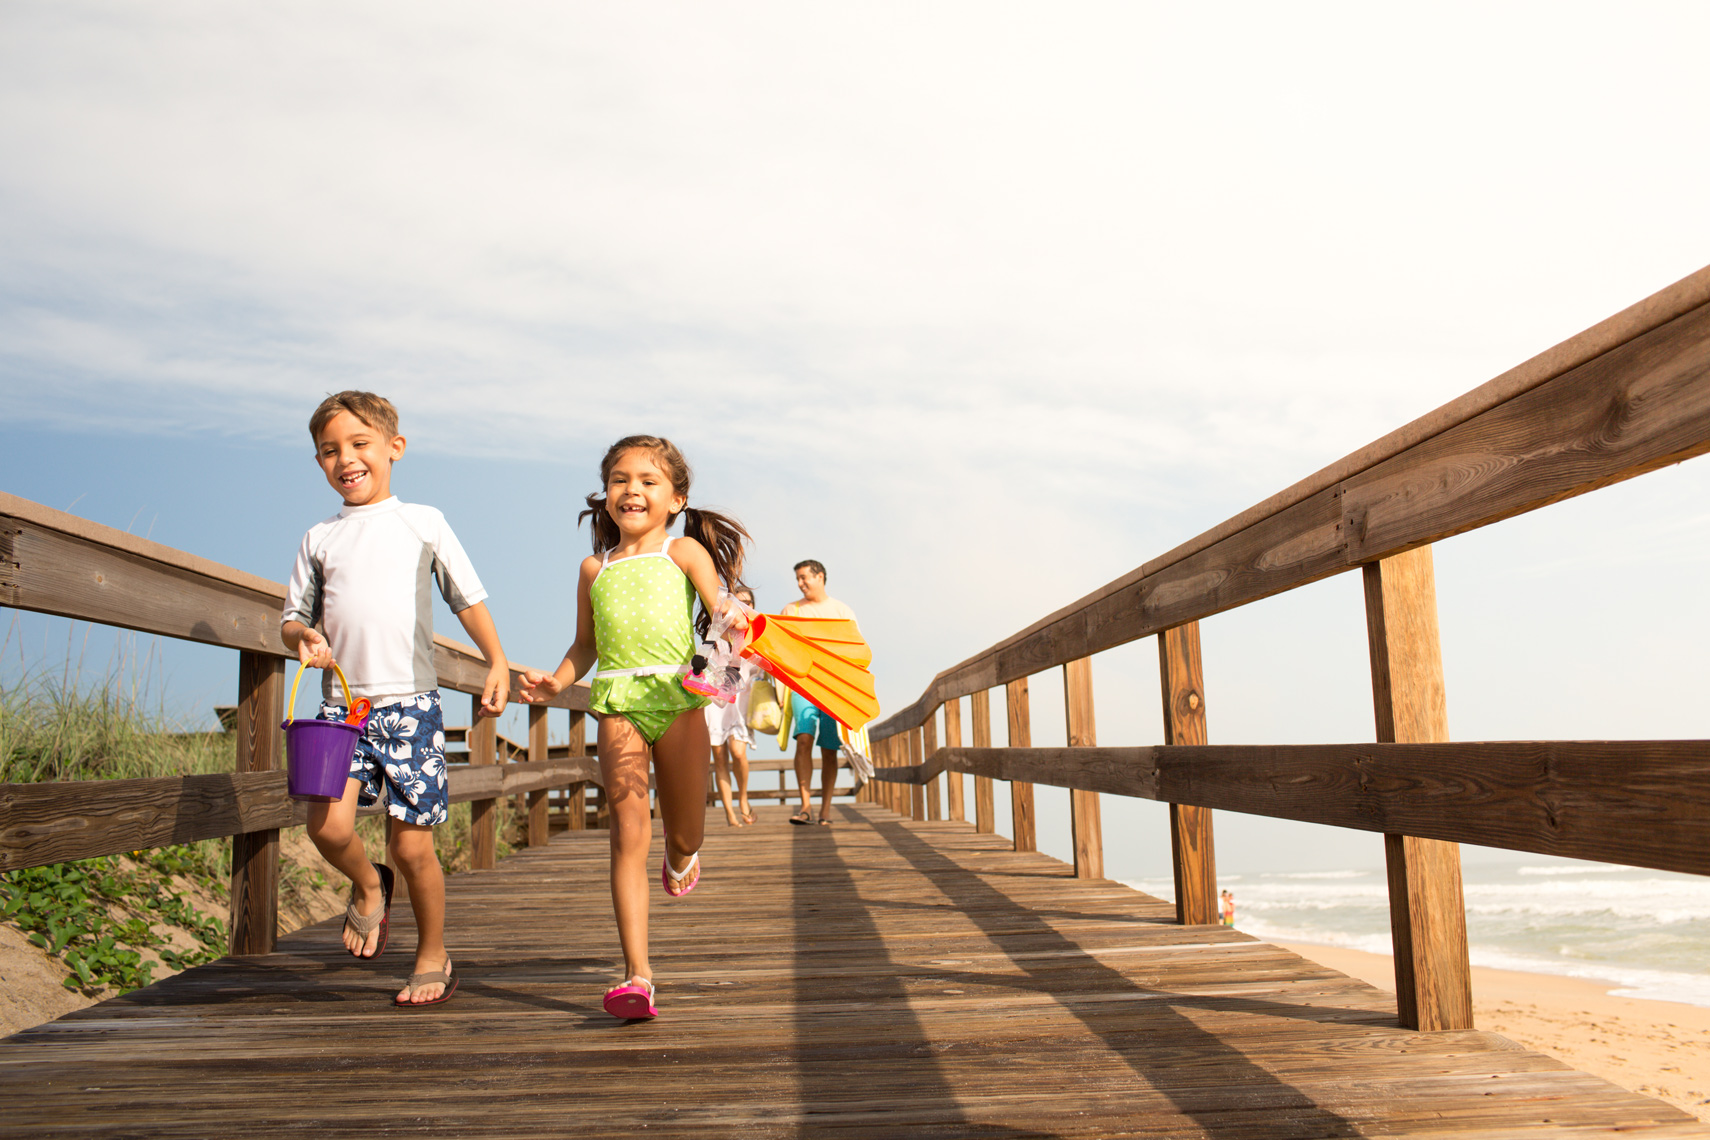 wyndham club wyndham boardwalk kids running sand